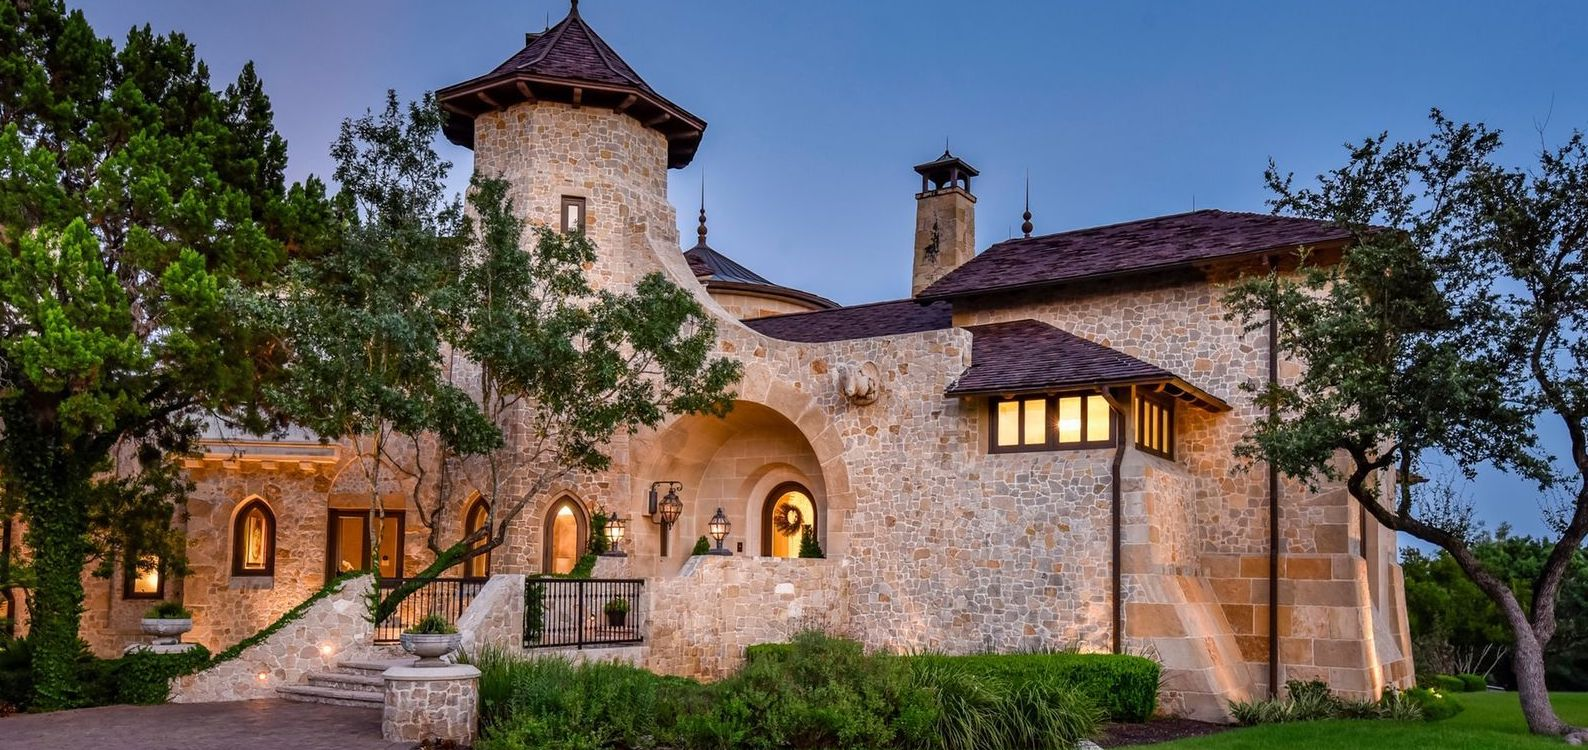 Remodelled 16,722 Sq. Ft. Château in Austin, TX Reduced to $12.9M (PHOTOS)